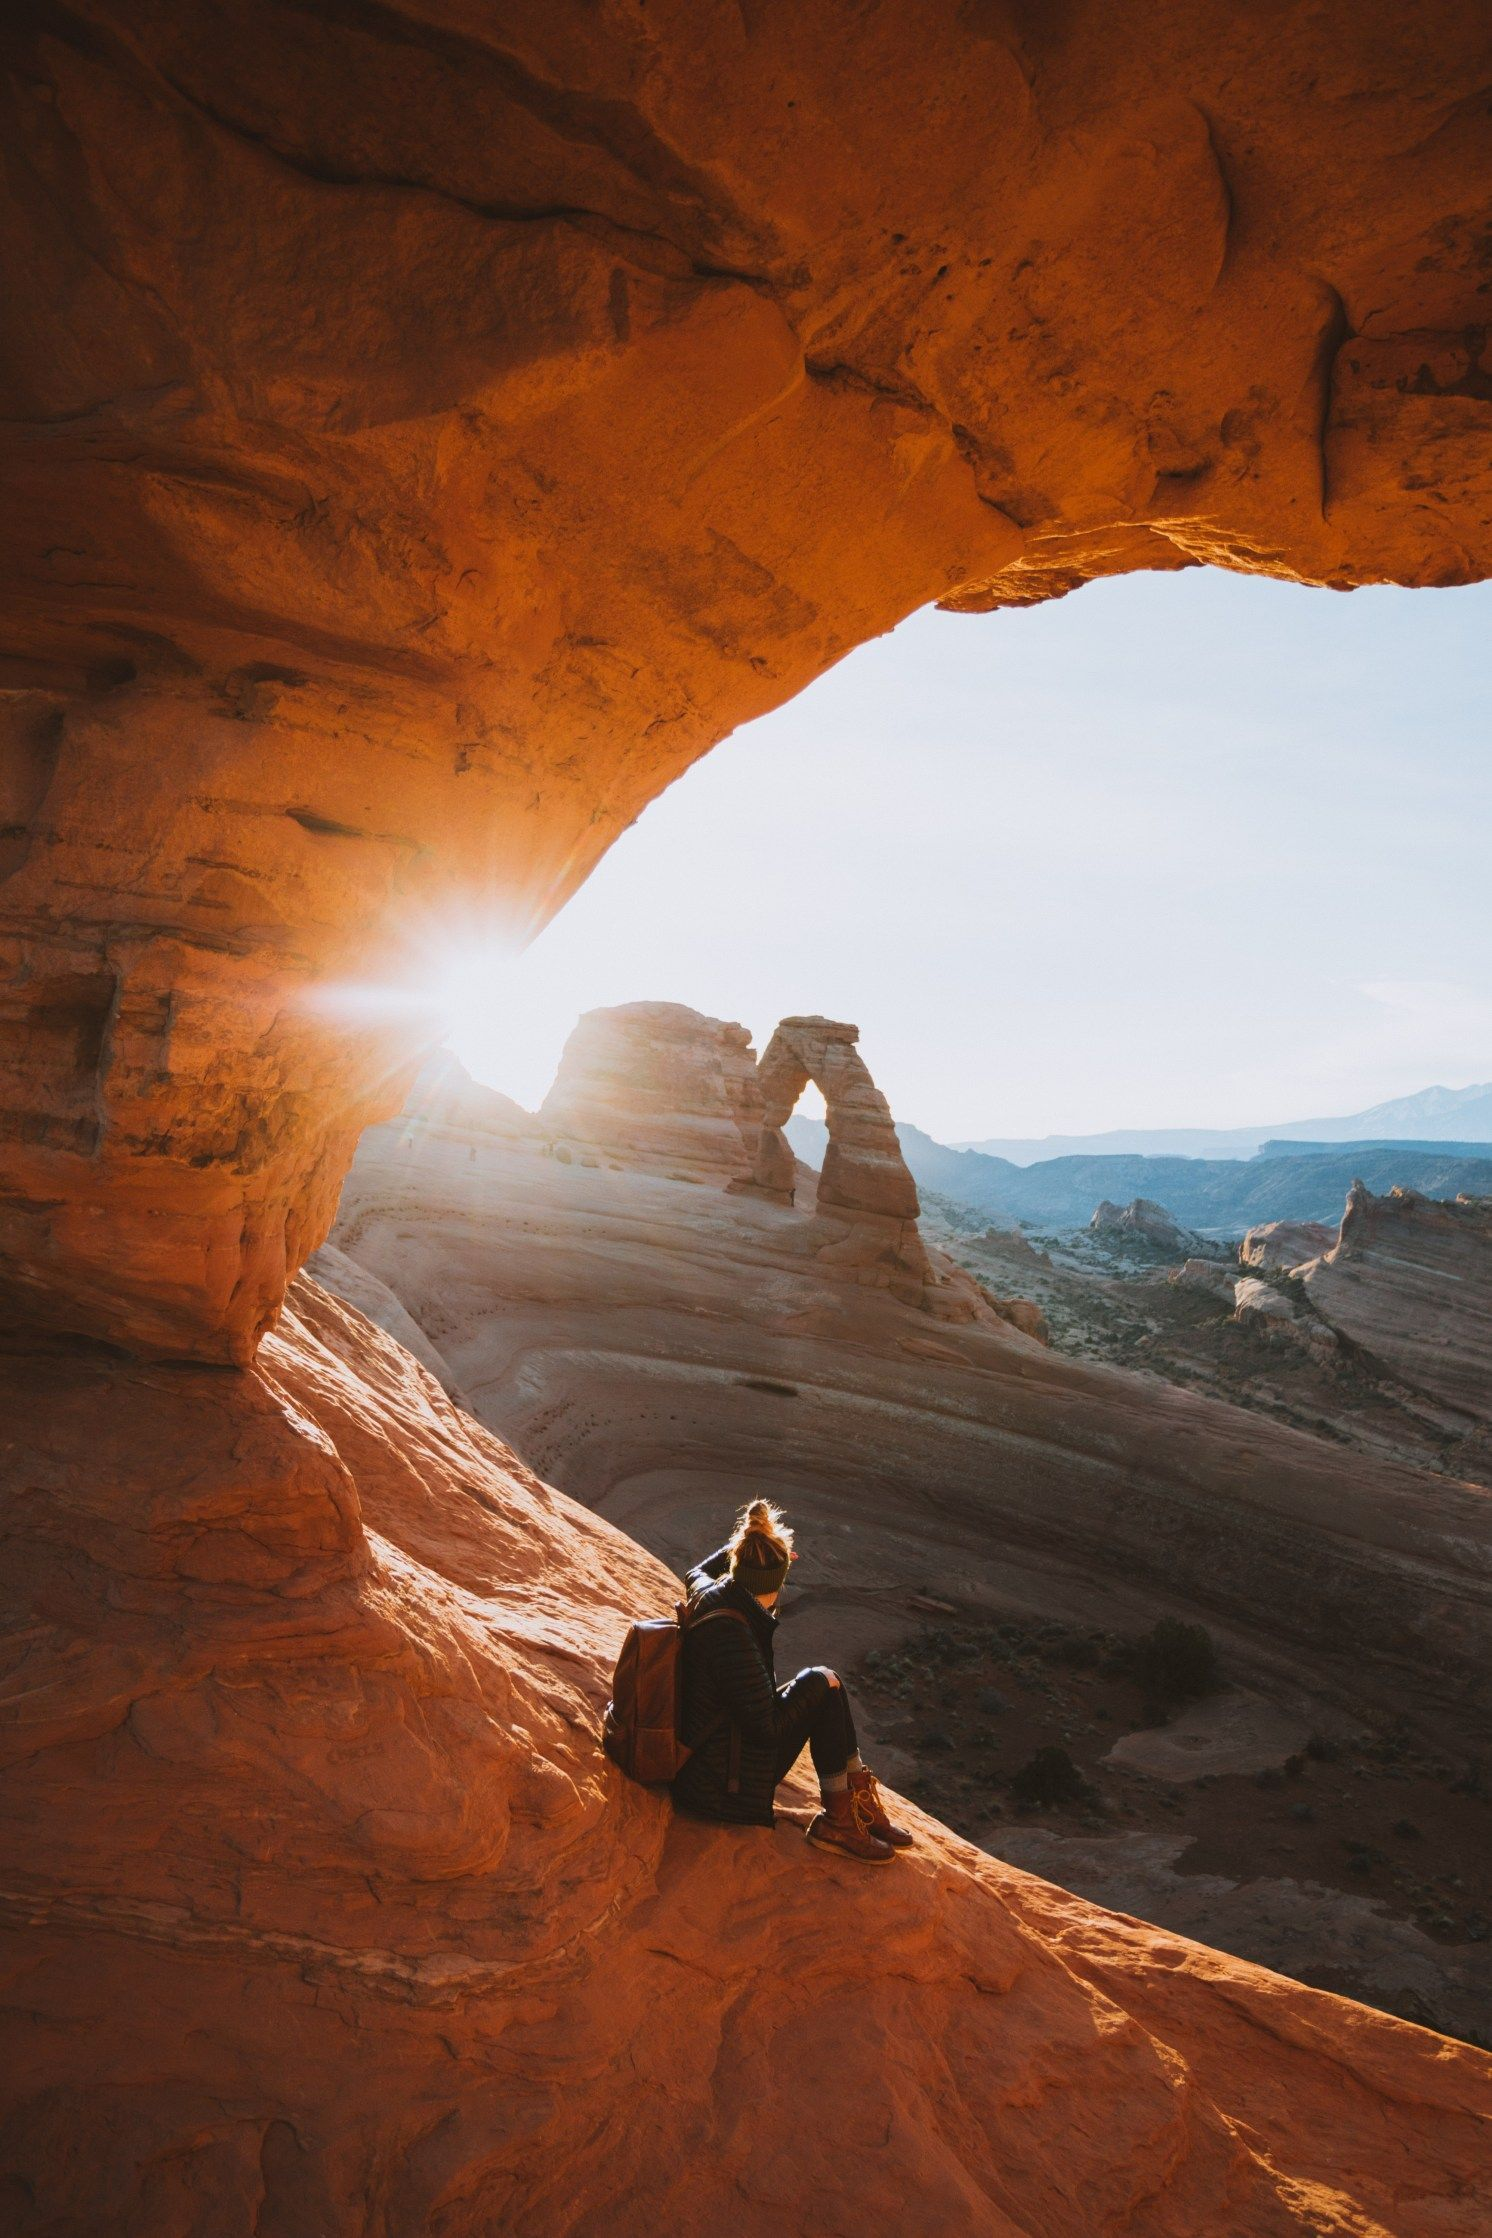 10 Amazing Hikes in Arches National Park - The Mandagies -  Explore Moab, Utah and experience this amazing national park! With over 2,000 natural arches, it' - #amazing #arches #backpackinggear #hikes #hiking #hikingbootswomen's #hikingoutfit #hikingoutfitfall #hikingoutfitsummer #hikingoutfitwinter #hikingoutfitwomen #hikingtips #hikingtrails #Mandagies #national #OutdoorTravel #Park